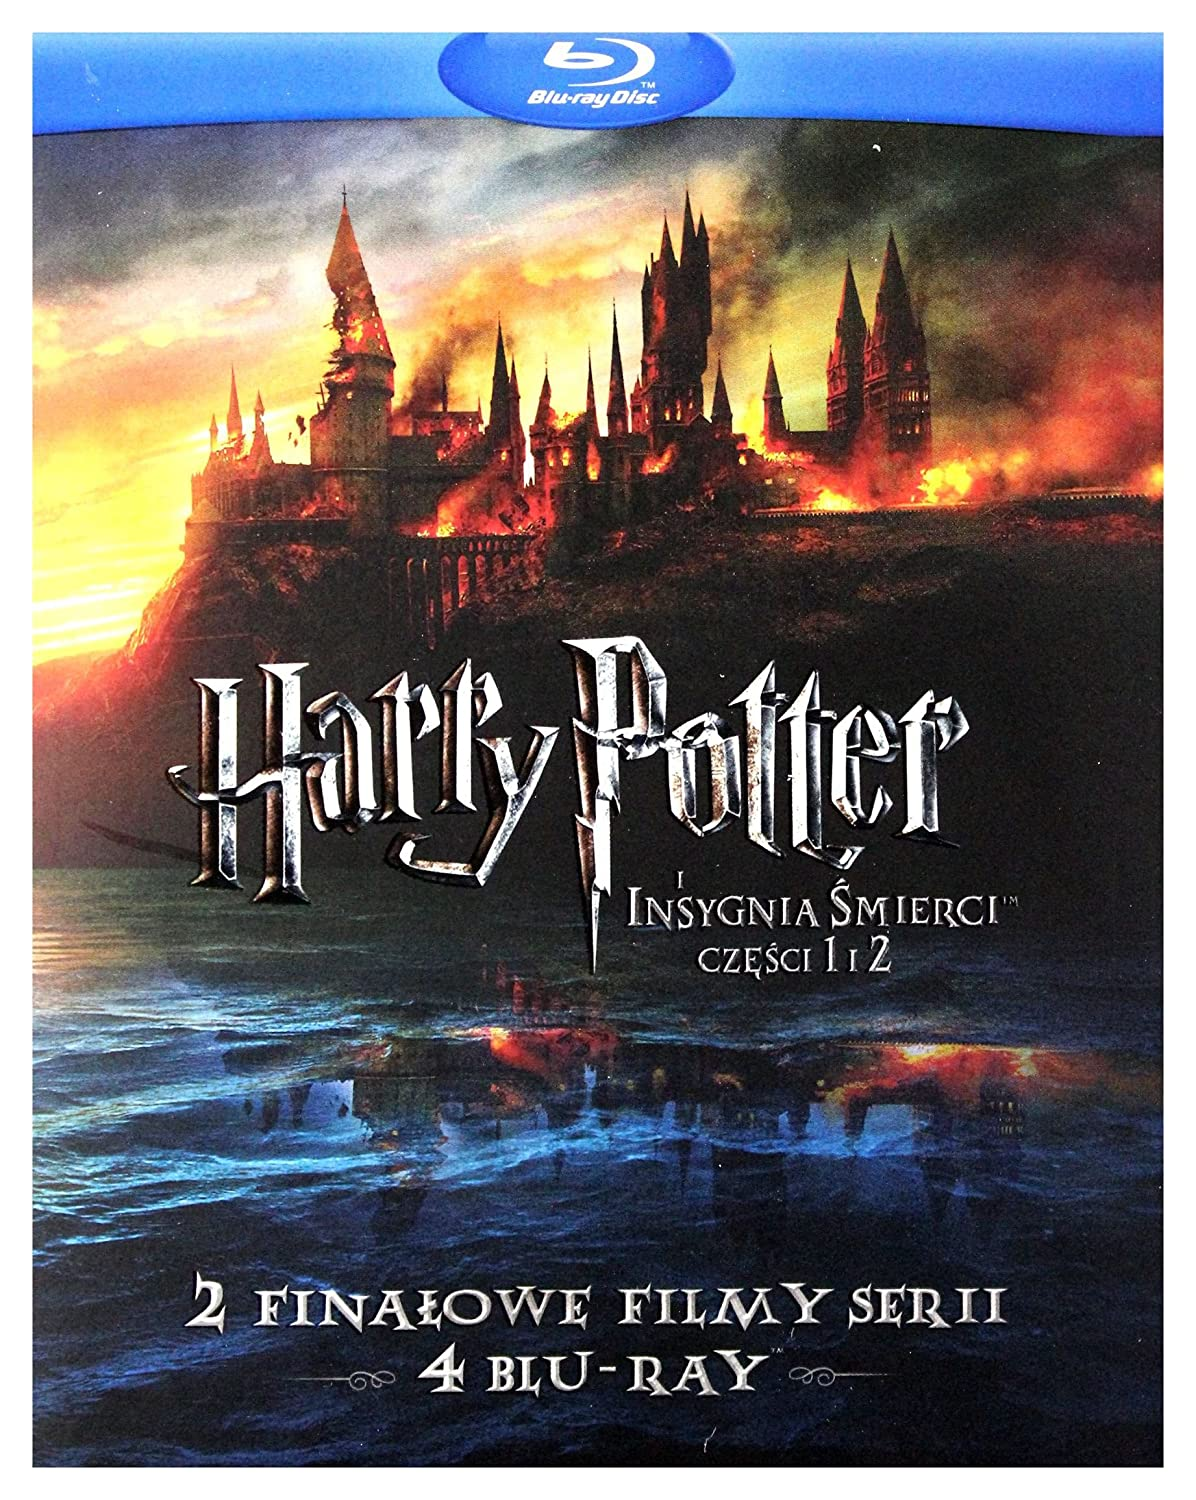 Harry Potter and the Deathly Hallows: Part I / Harry Potter and the Deathly Hallows: Part II (BOX) [4Blu-Ray] (English audio. English subtitles)